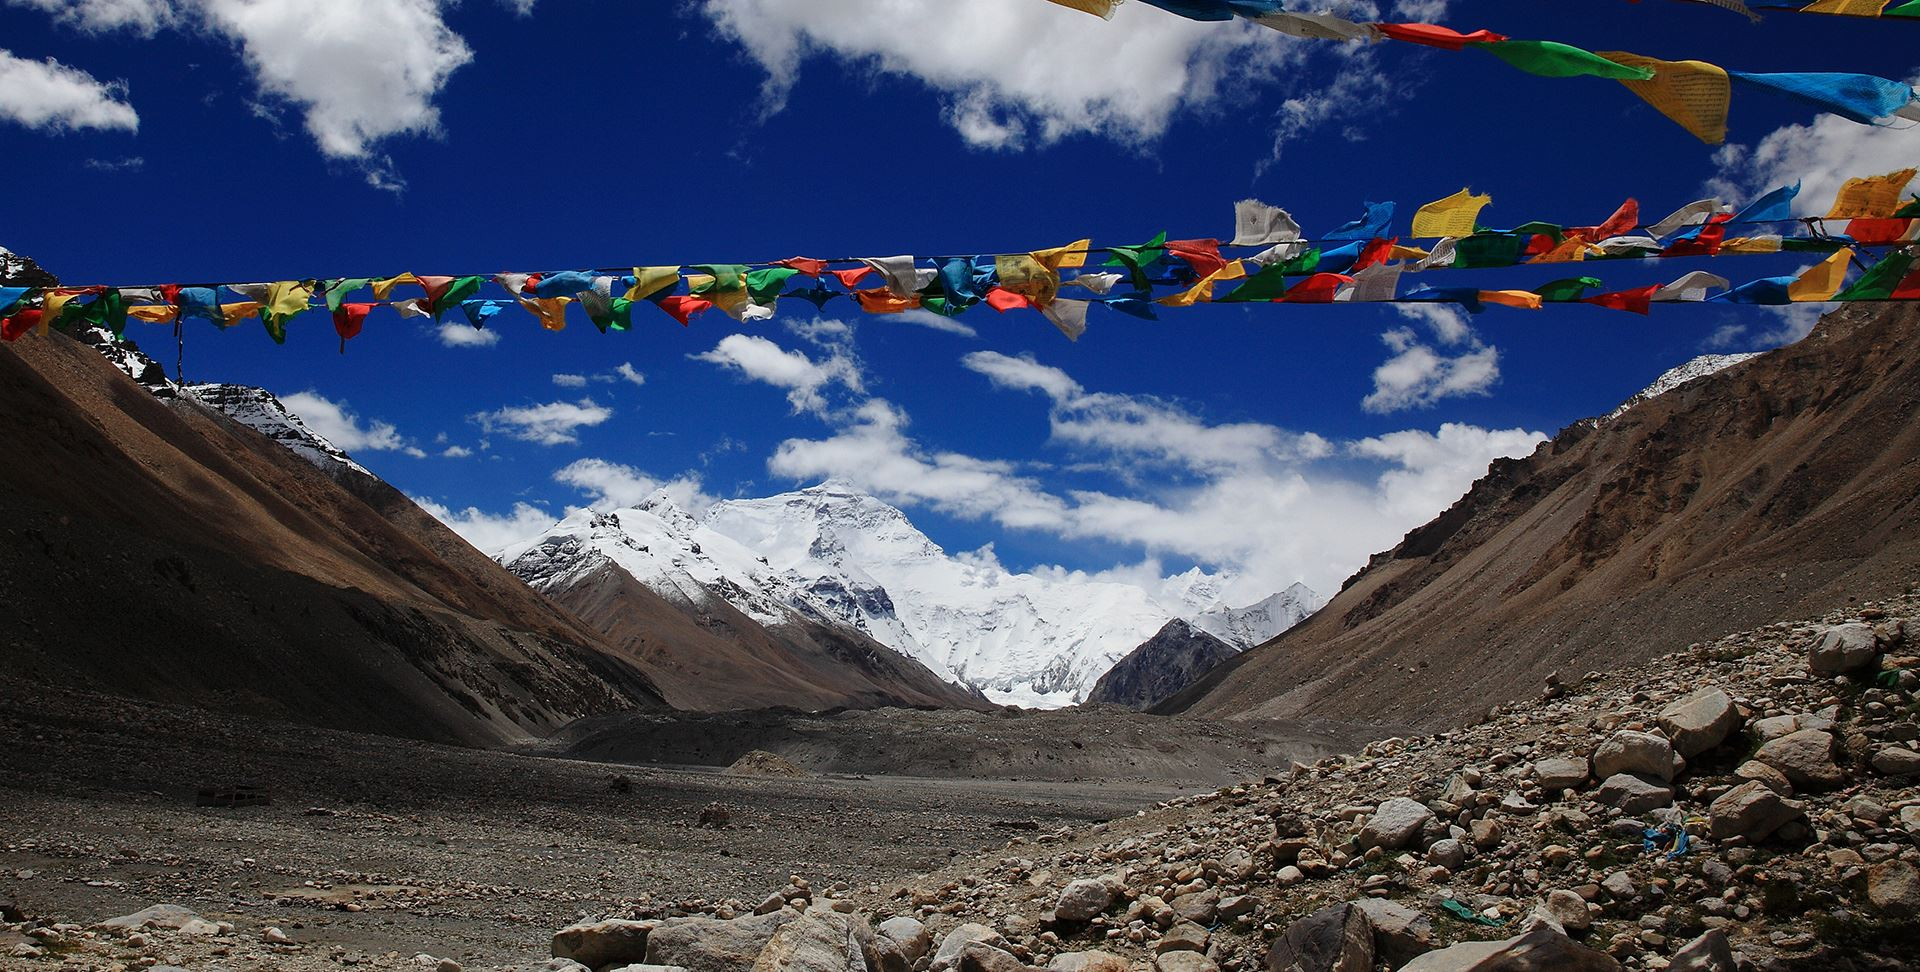 Overland Tour from Sichuan via Tibet to Nepal with Everest BC